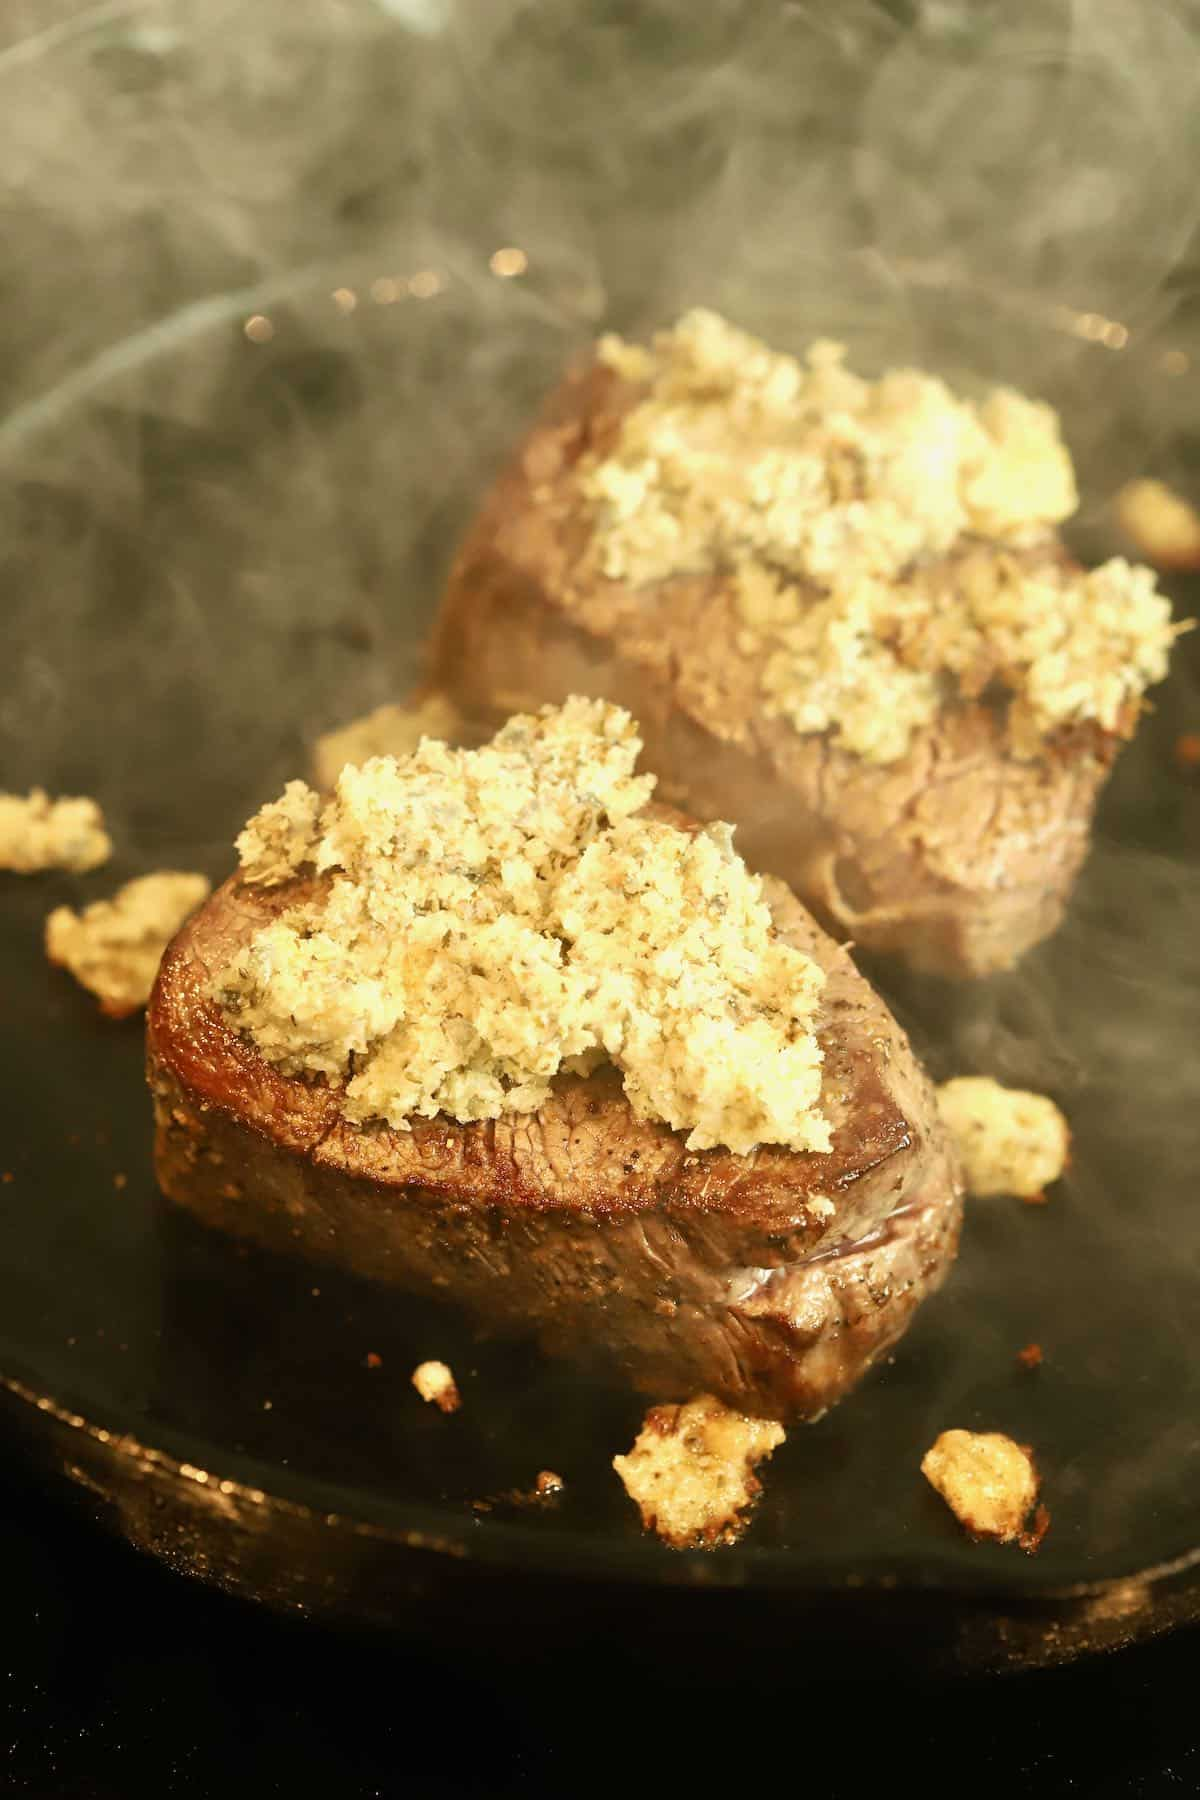 Two steaks topped with blue cheese cooking in a cast iron skillet.